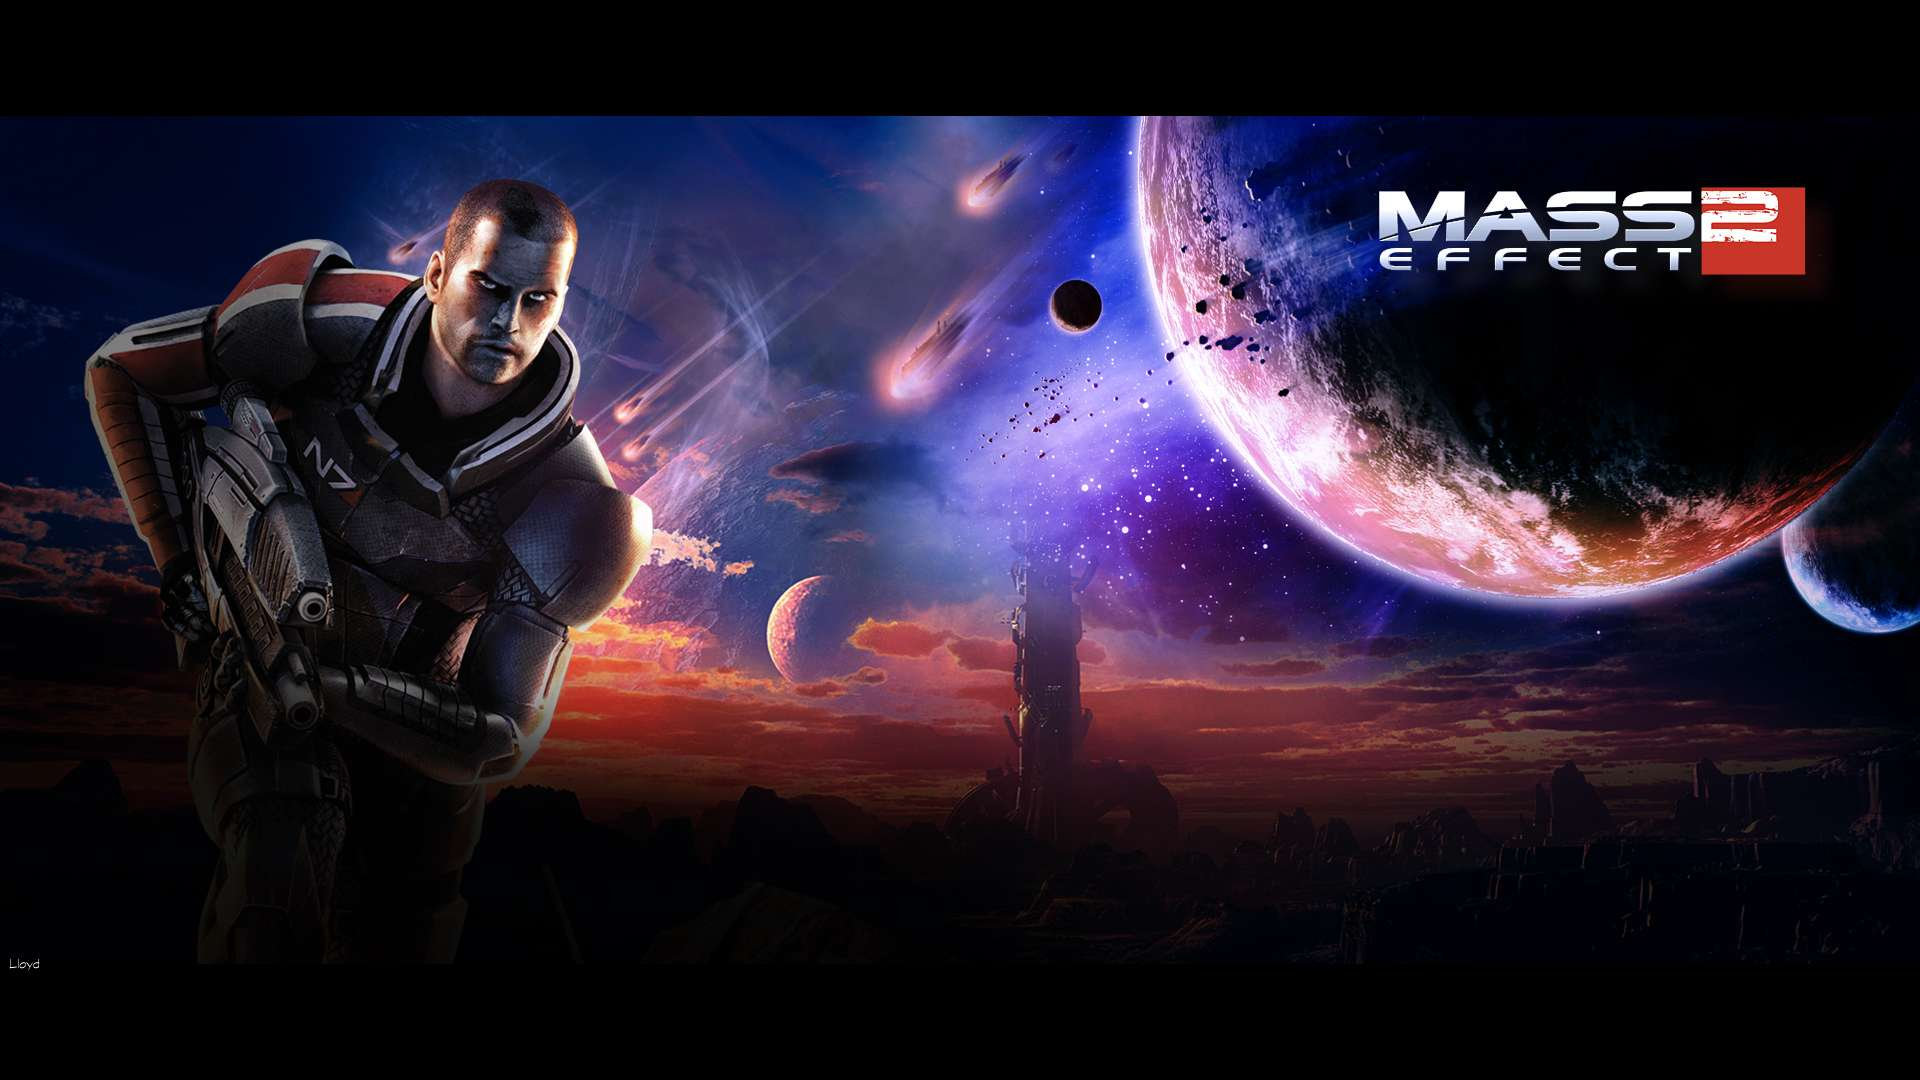 Mass_Effect_2_Wallpaper_by_igotgame1075